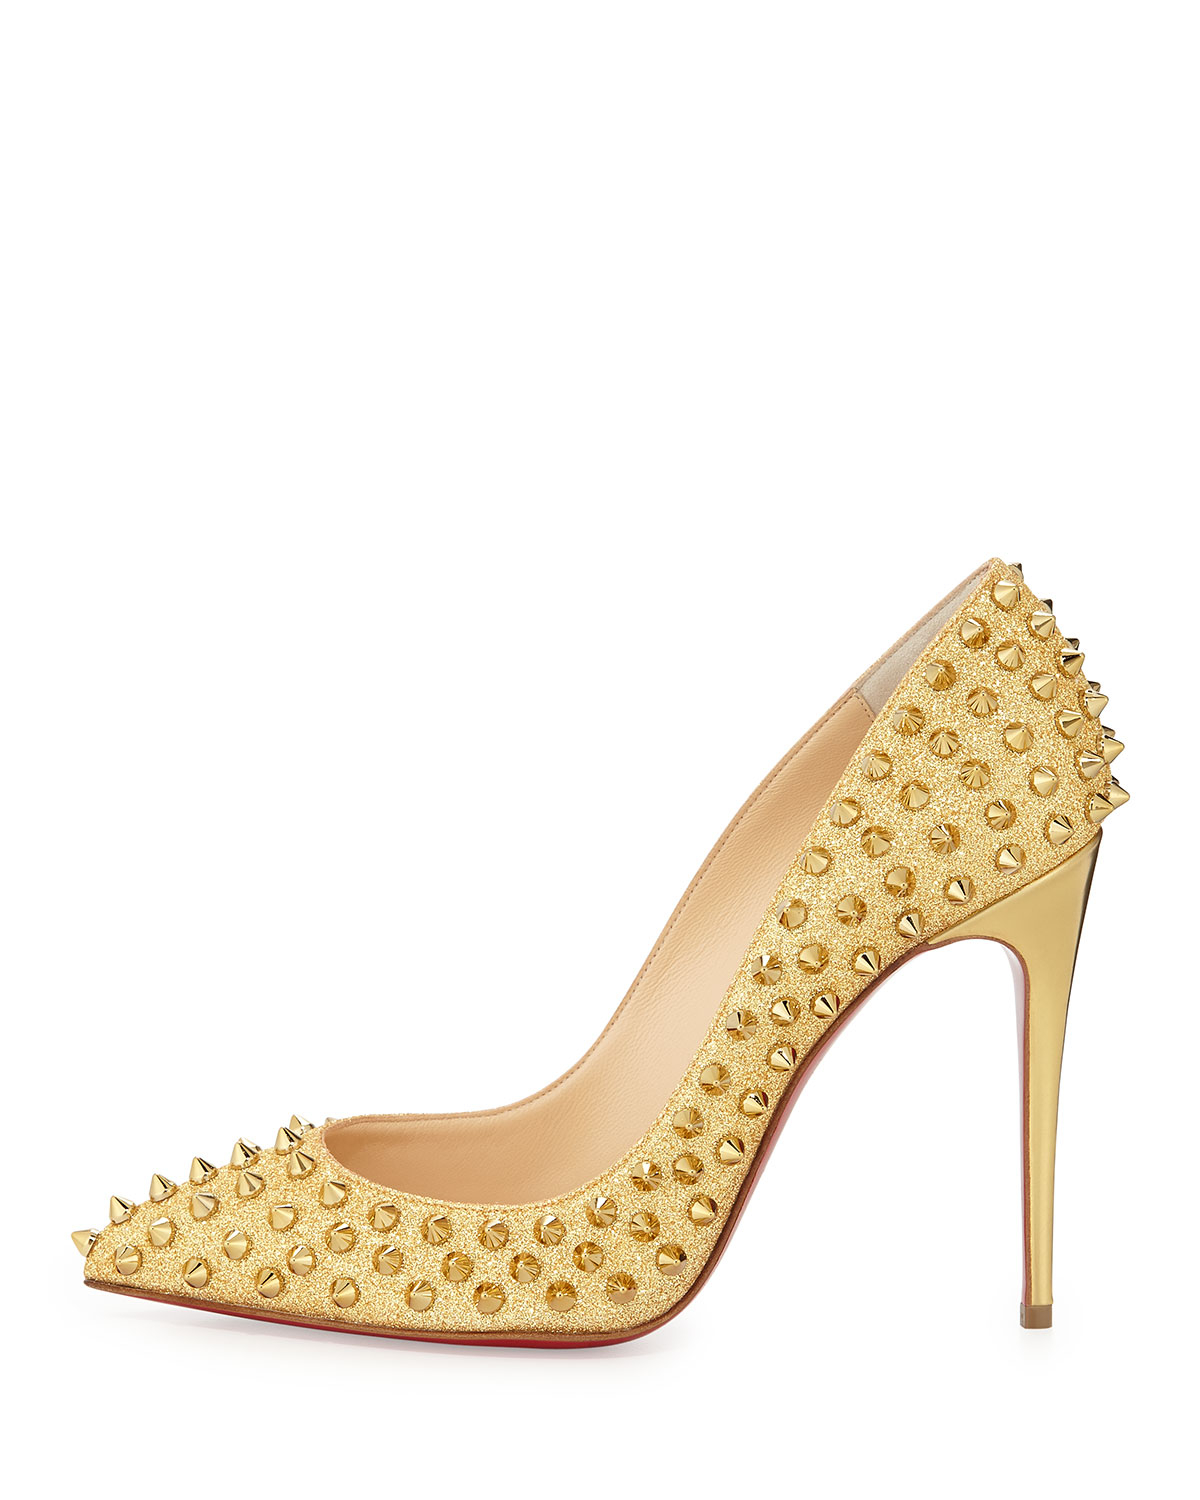 christian louboutin gold spiked shoes